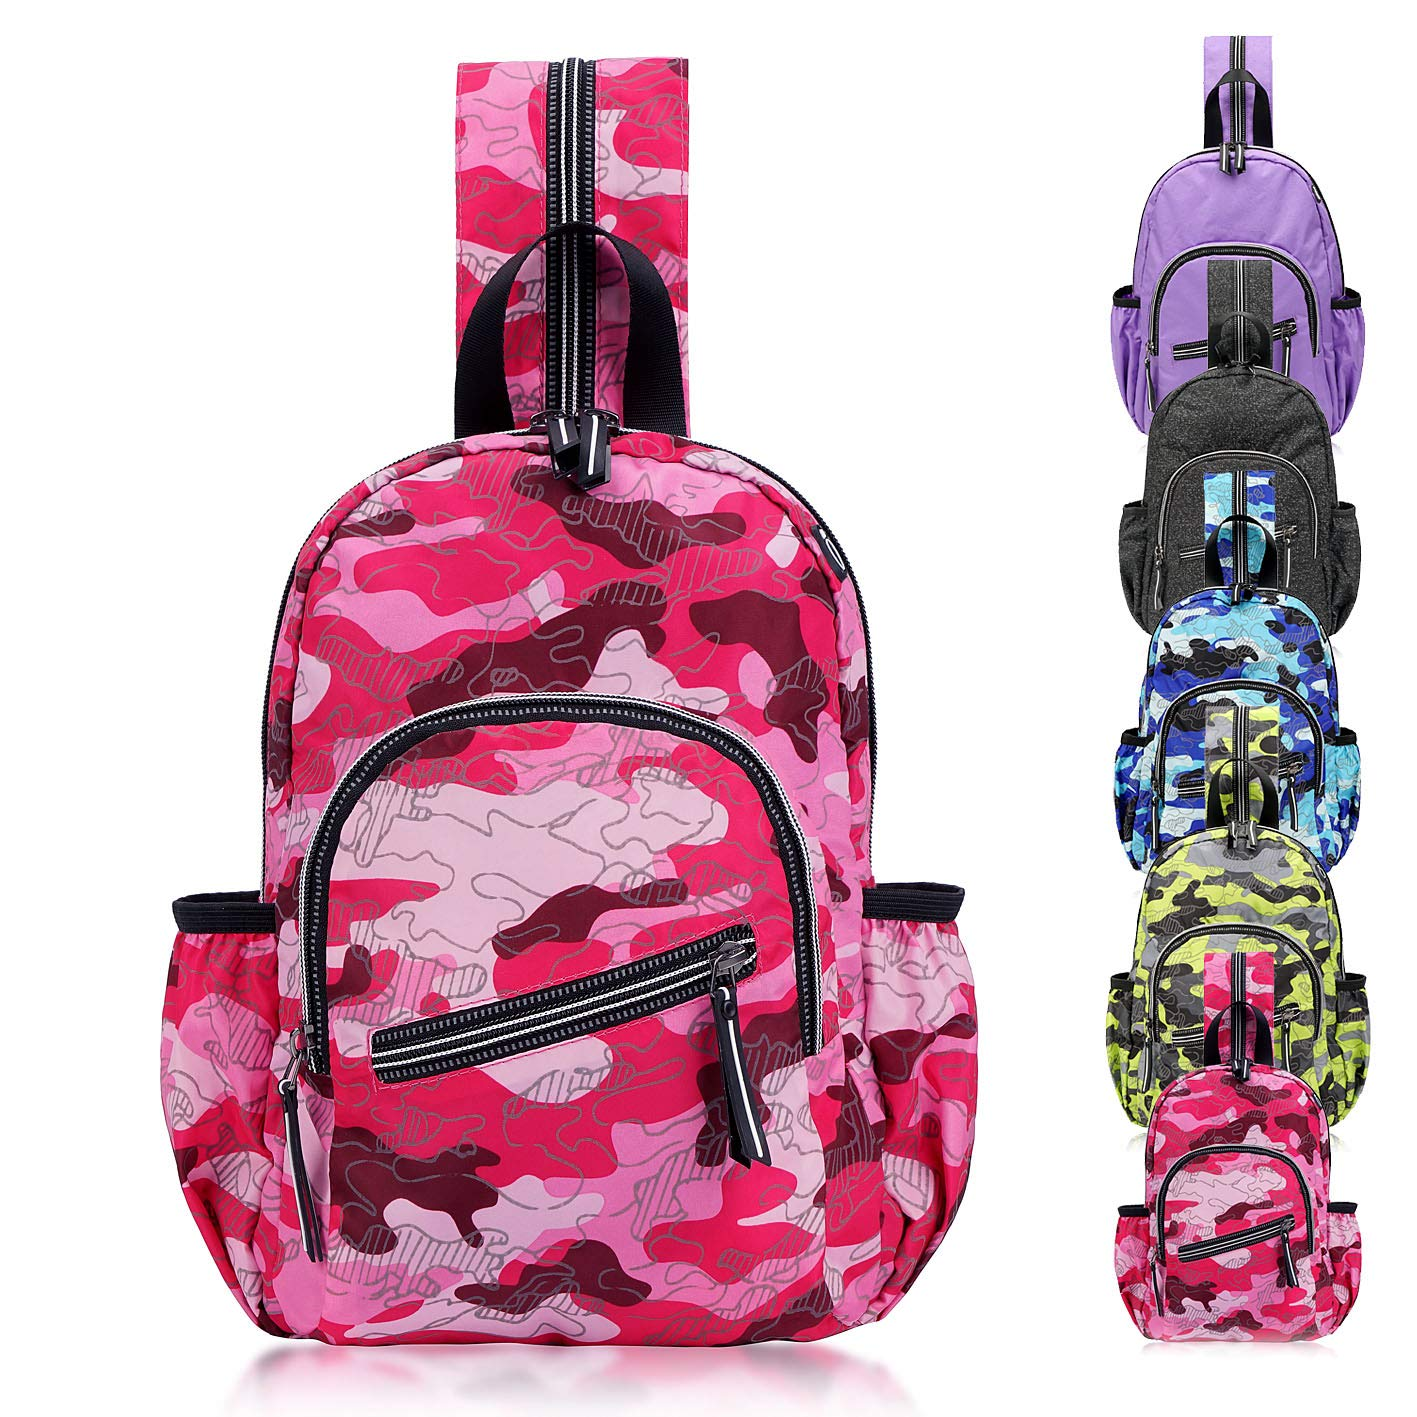 e3e70da9dba6 DivaCat Packable Sling Backpack, Durable Waterproof Crossbody Bag, Daypack  for School Travel Hiking Biking Camping Outdoor Camel Pink